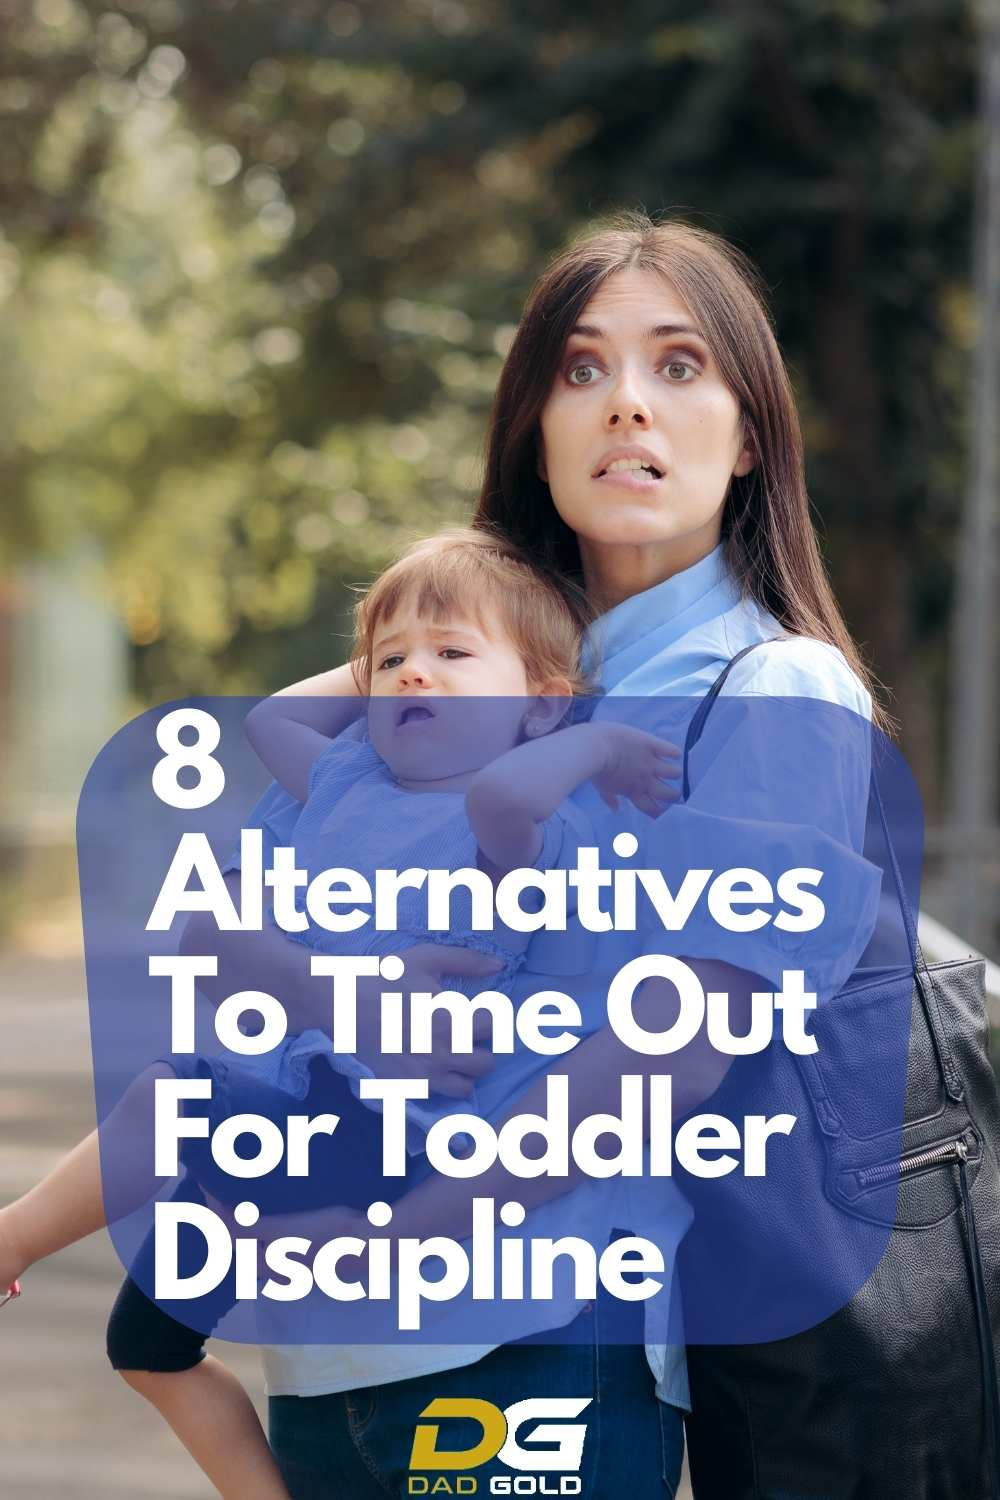 8 Alternatives To Time Out For Toddler Discipline